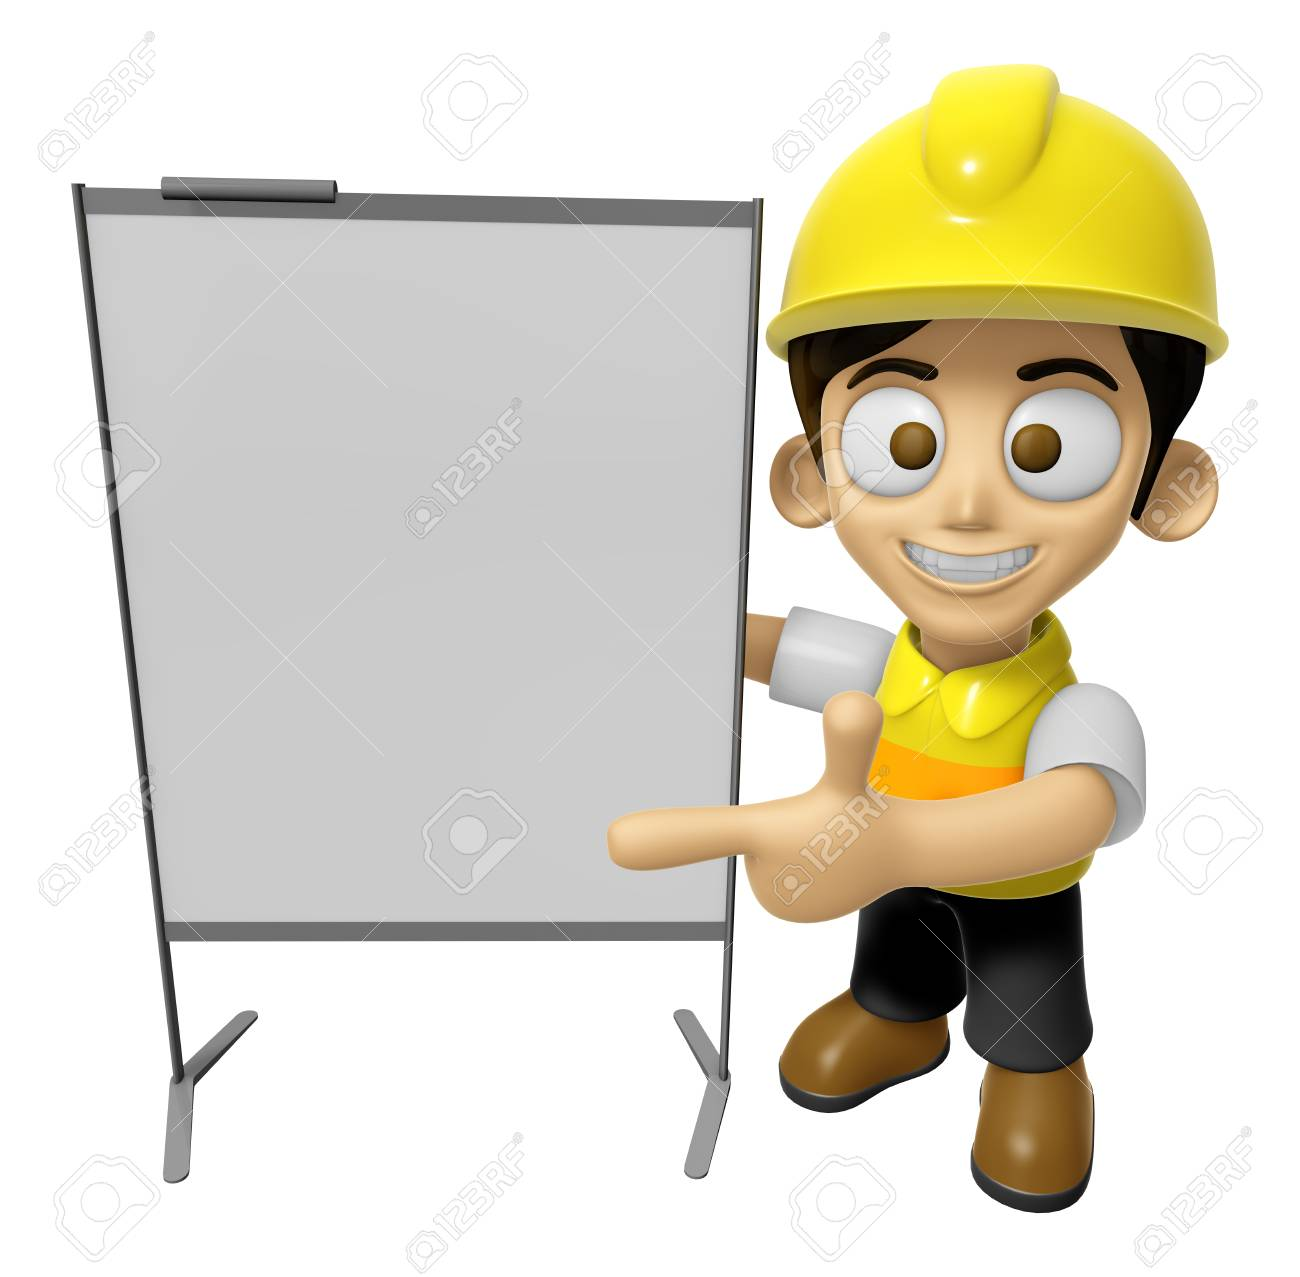 3D Construction Worker Man Mascot Is Concise Explanation Of A Whiteboard.  Work And Job Character  Construction Worker Job Description